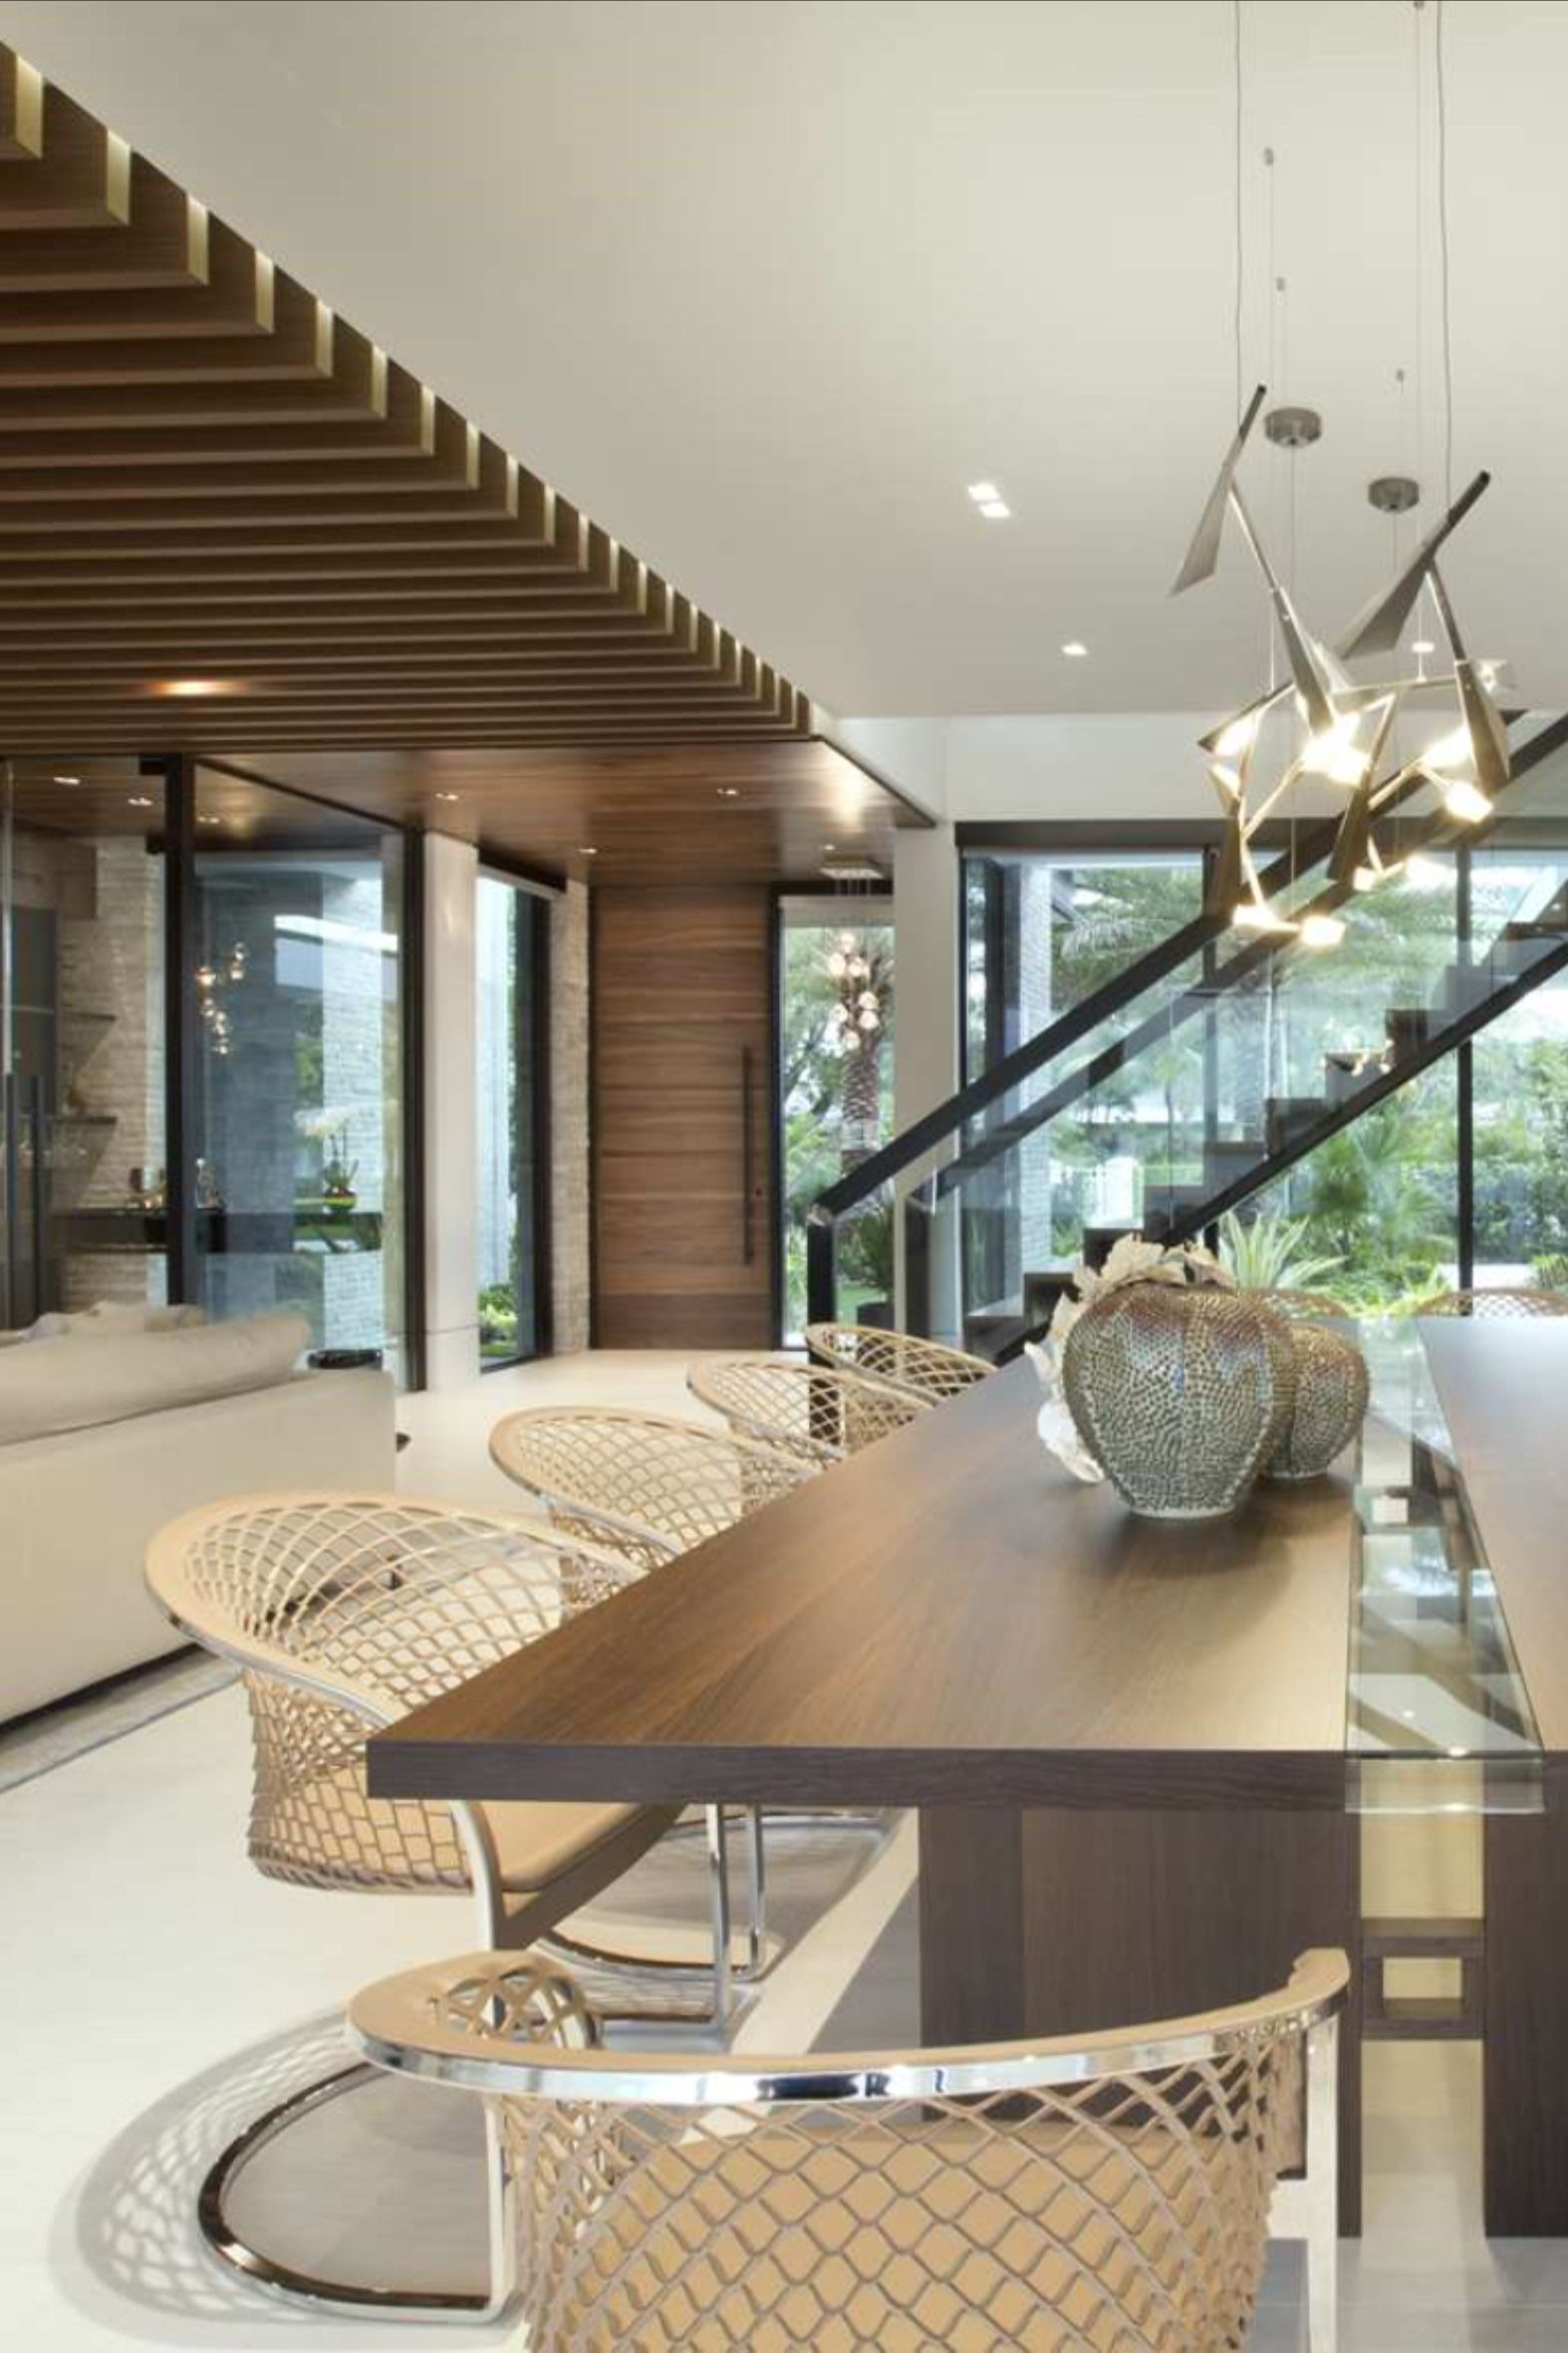 Best Residential Interior Design Projects in Miami   DKOR ...